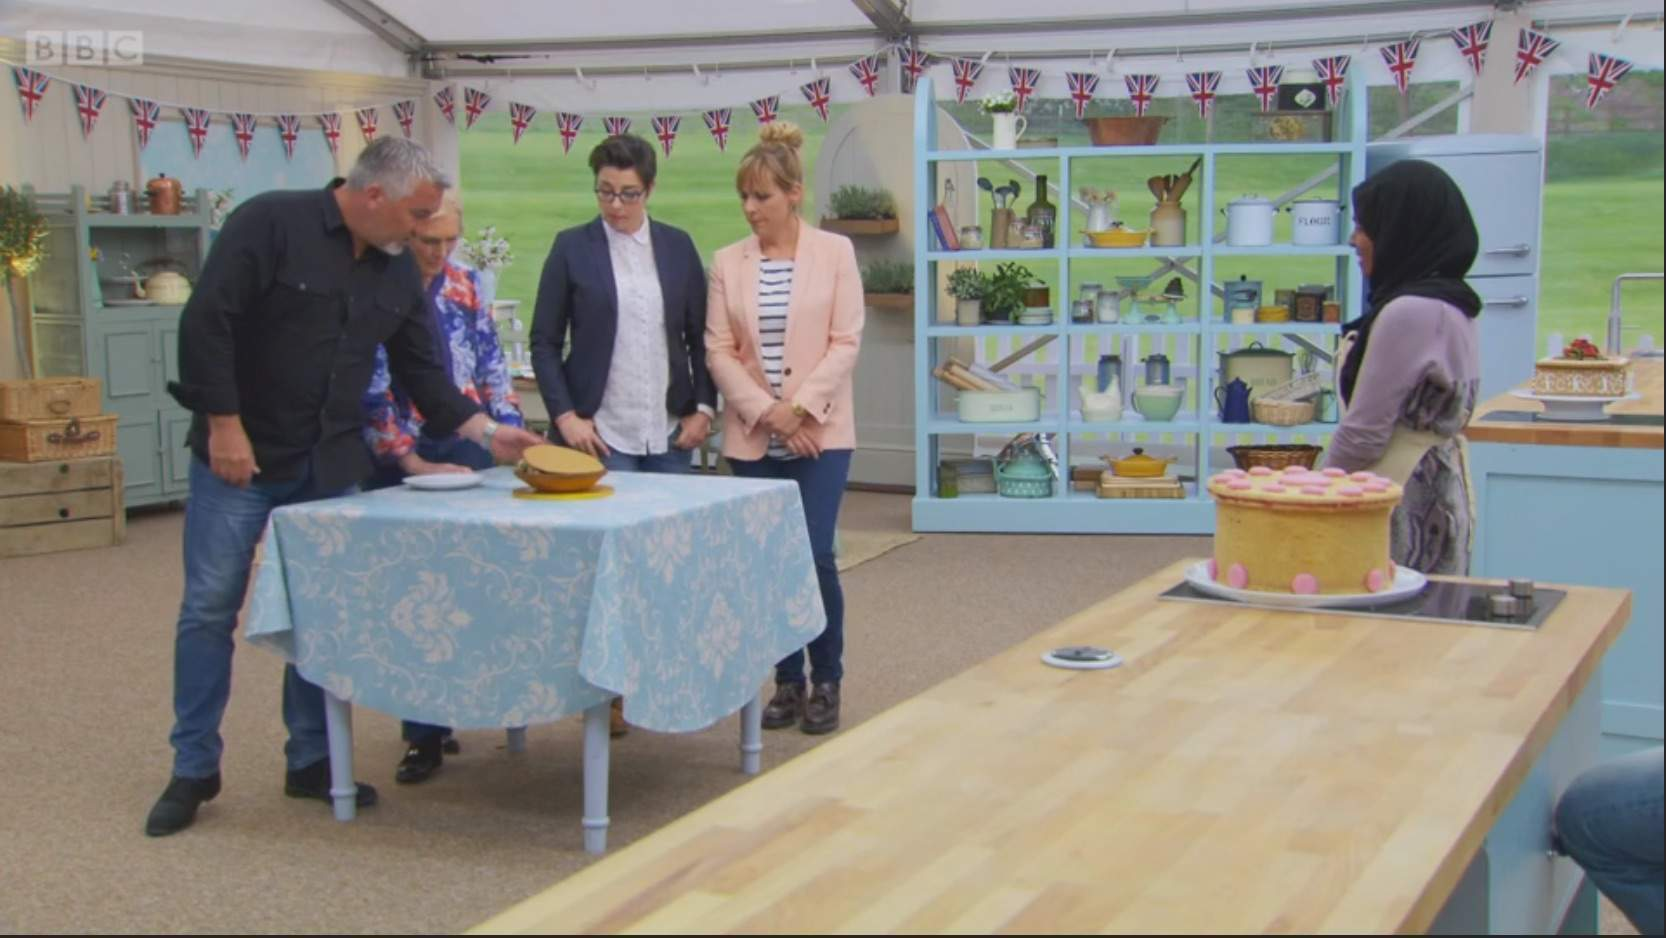 The Great British Bake Off: What Nadiya's cracked bowl can teach us about resilience and hard work